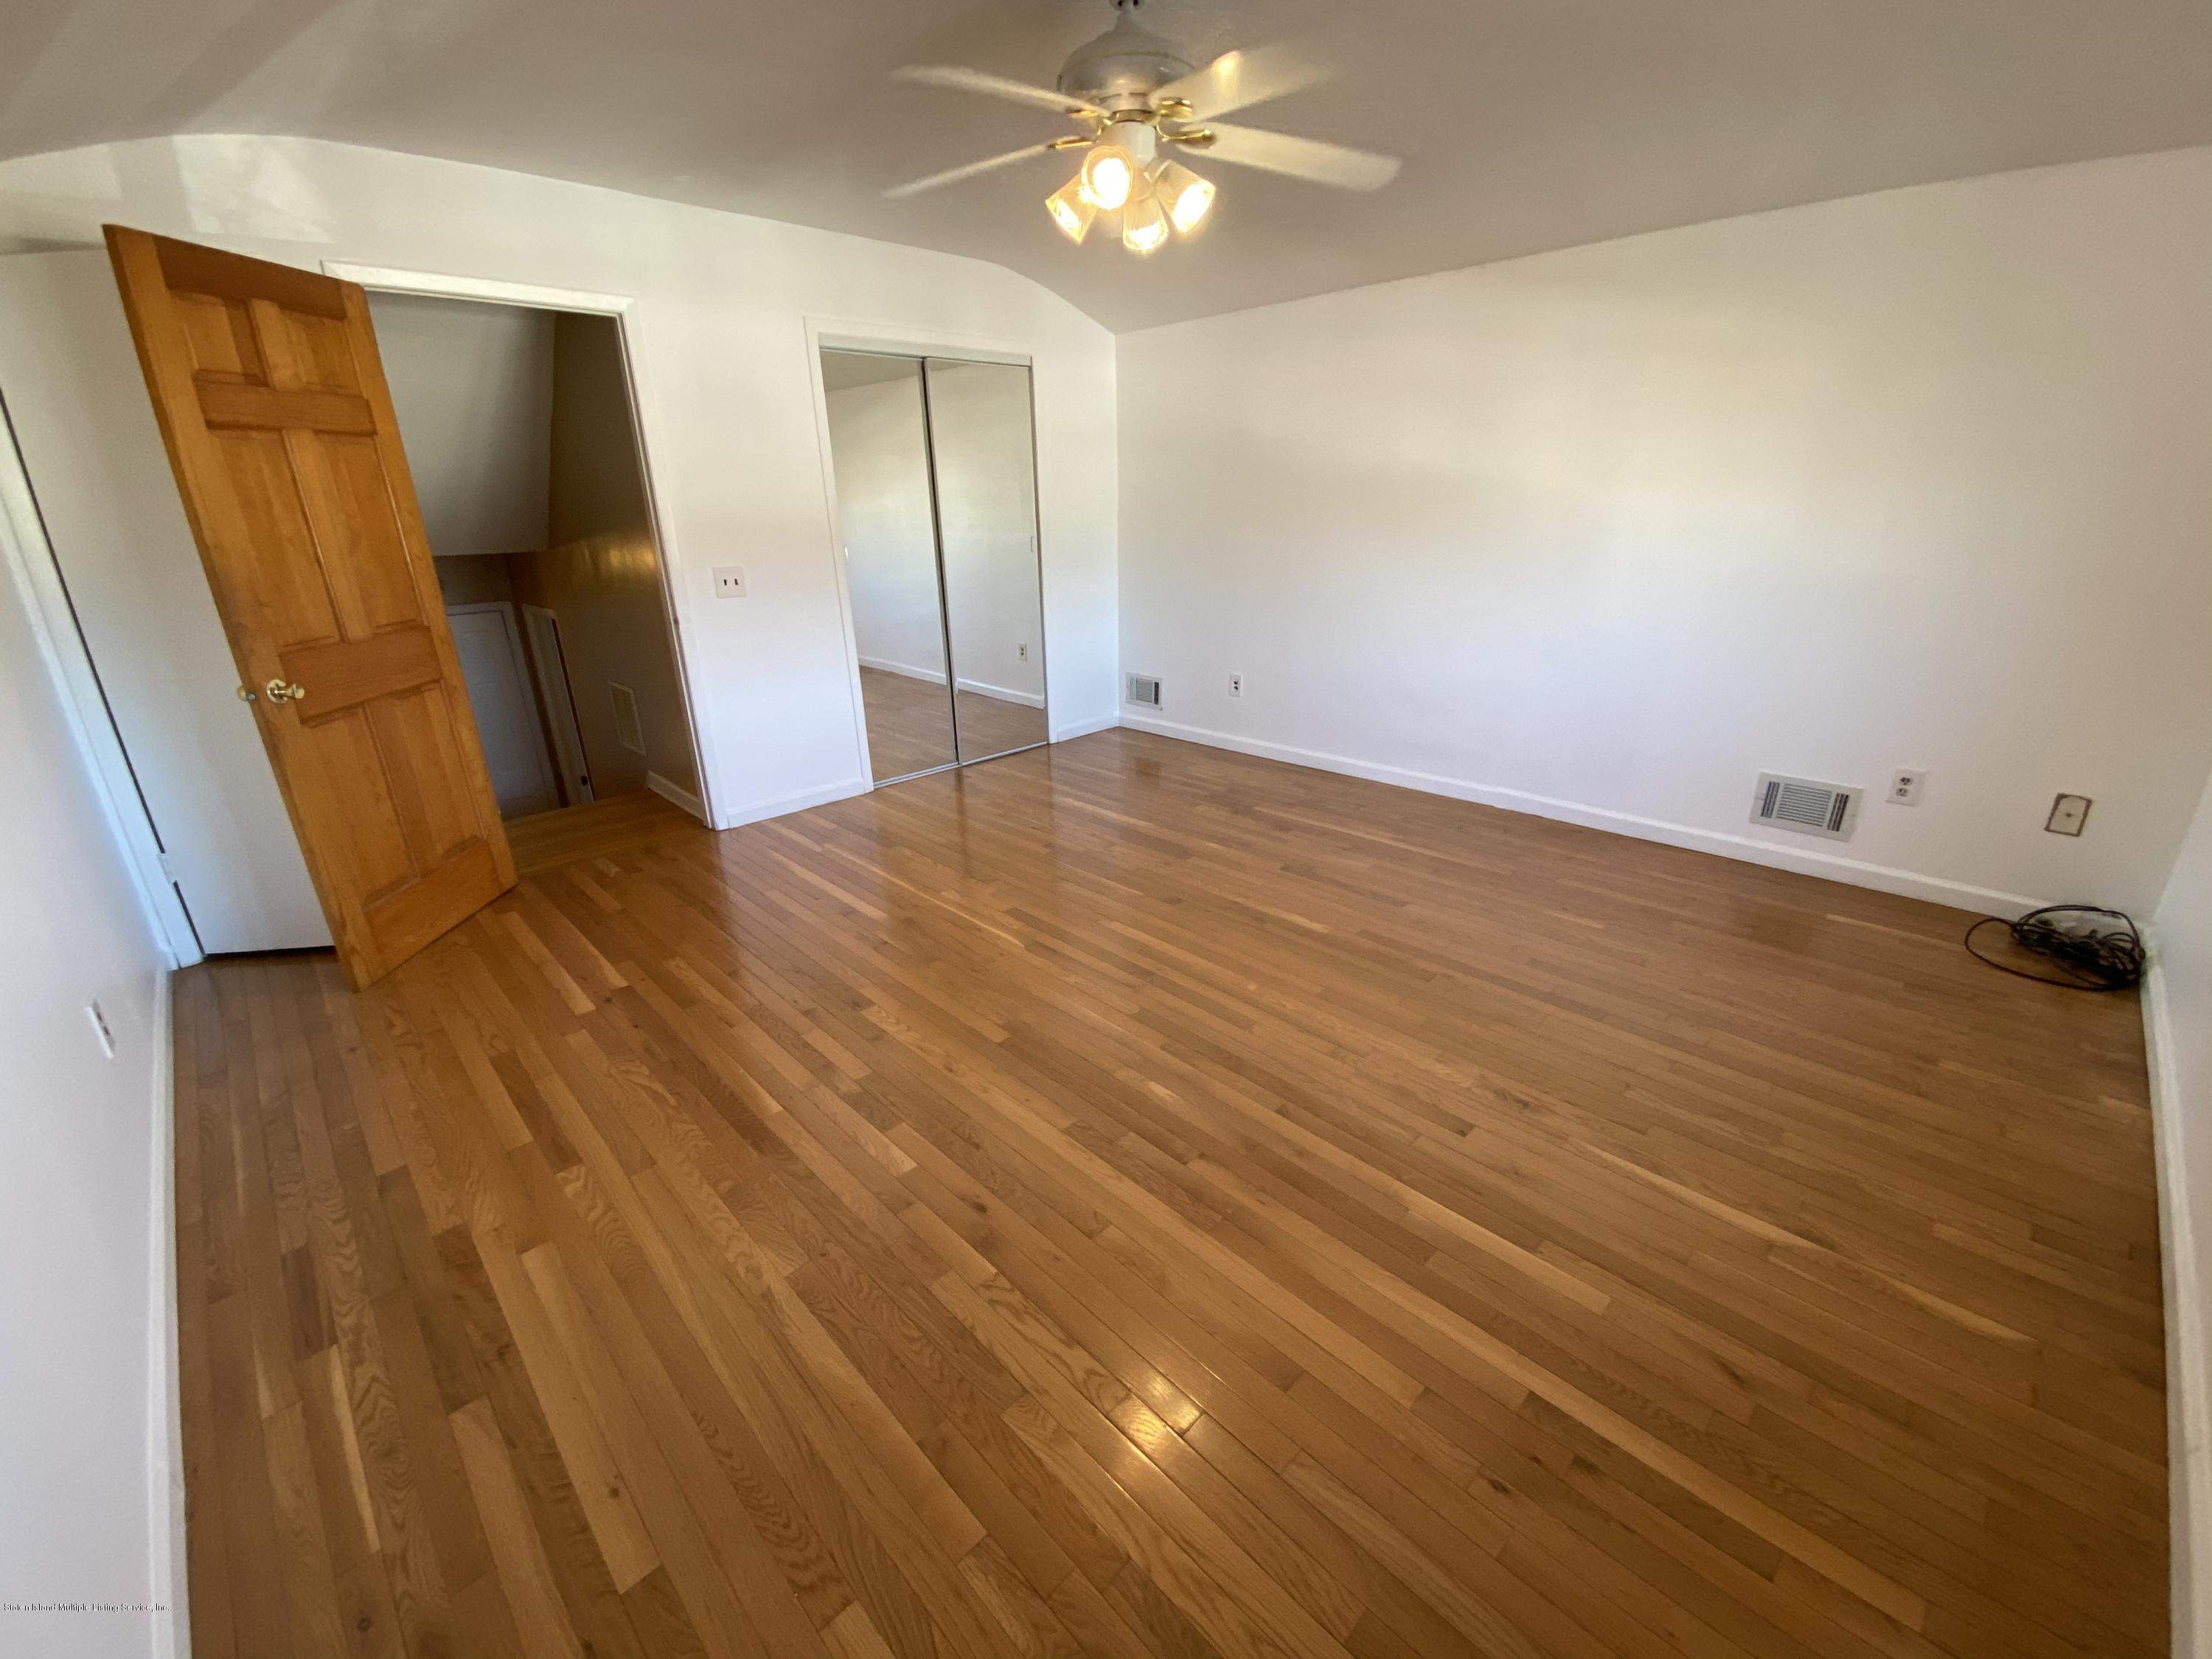 Single Family - Attached 118 Braisted Avenue  Staten Island, NY 10314, MLS-1135869-8